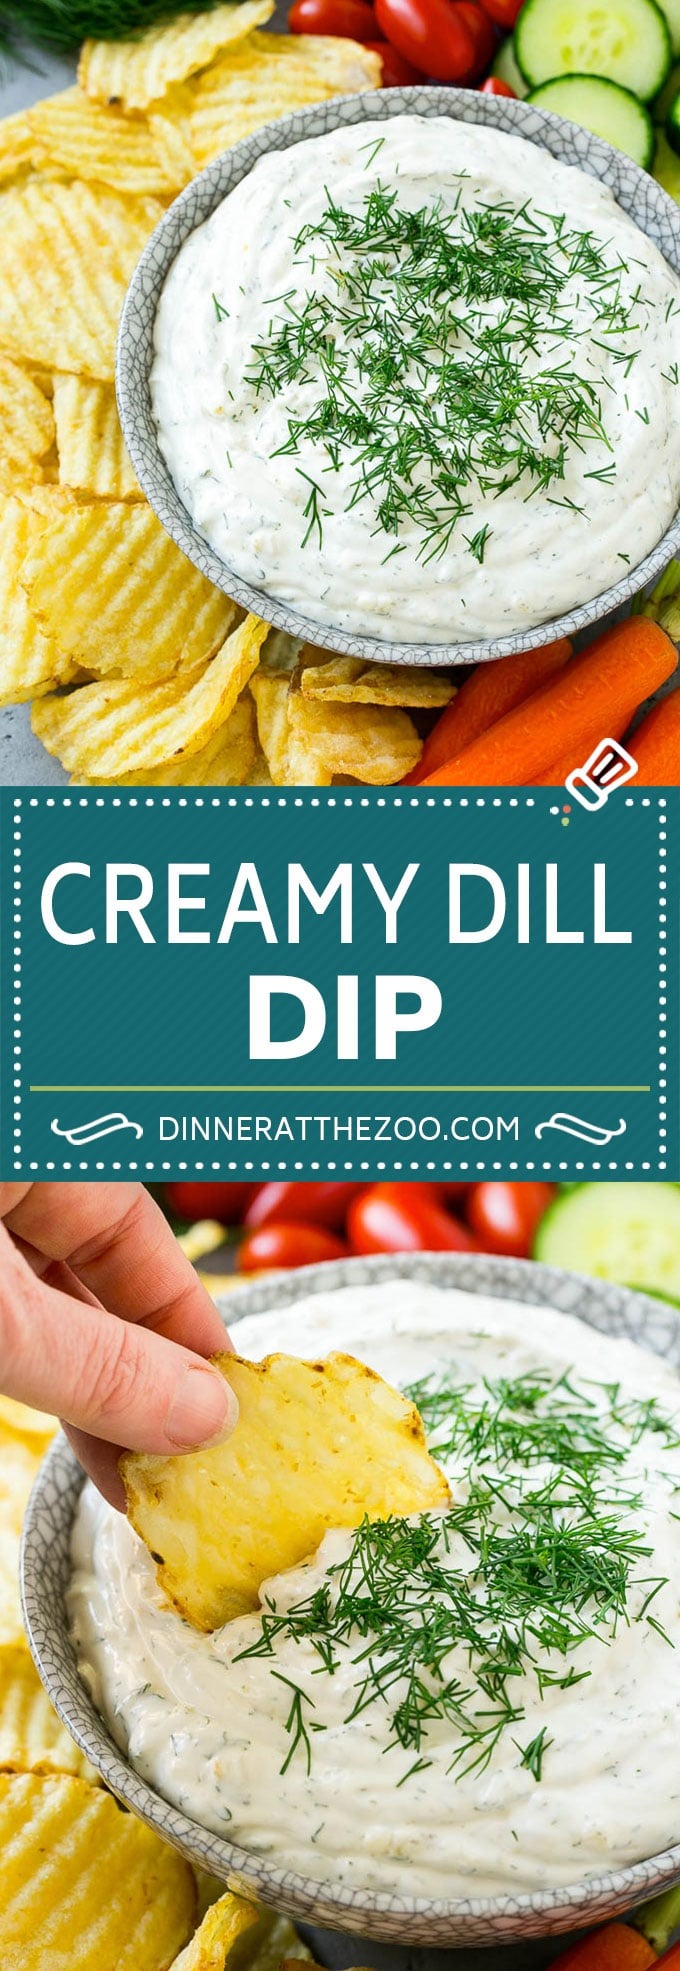 Dill Dip Recipe | Potato Chip Dip | Creamy Dip #dip #chips #snack #appetizer #dinneratthezoo